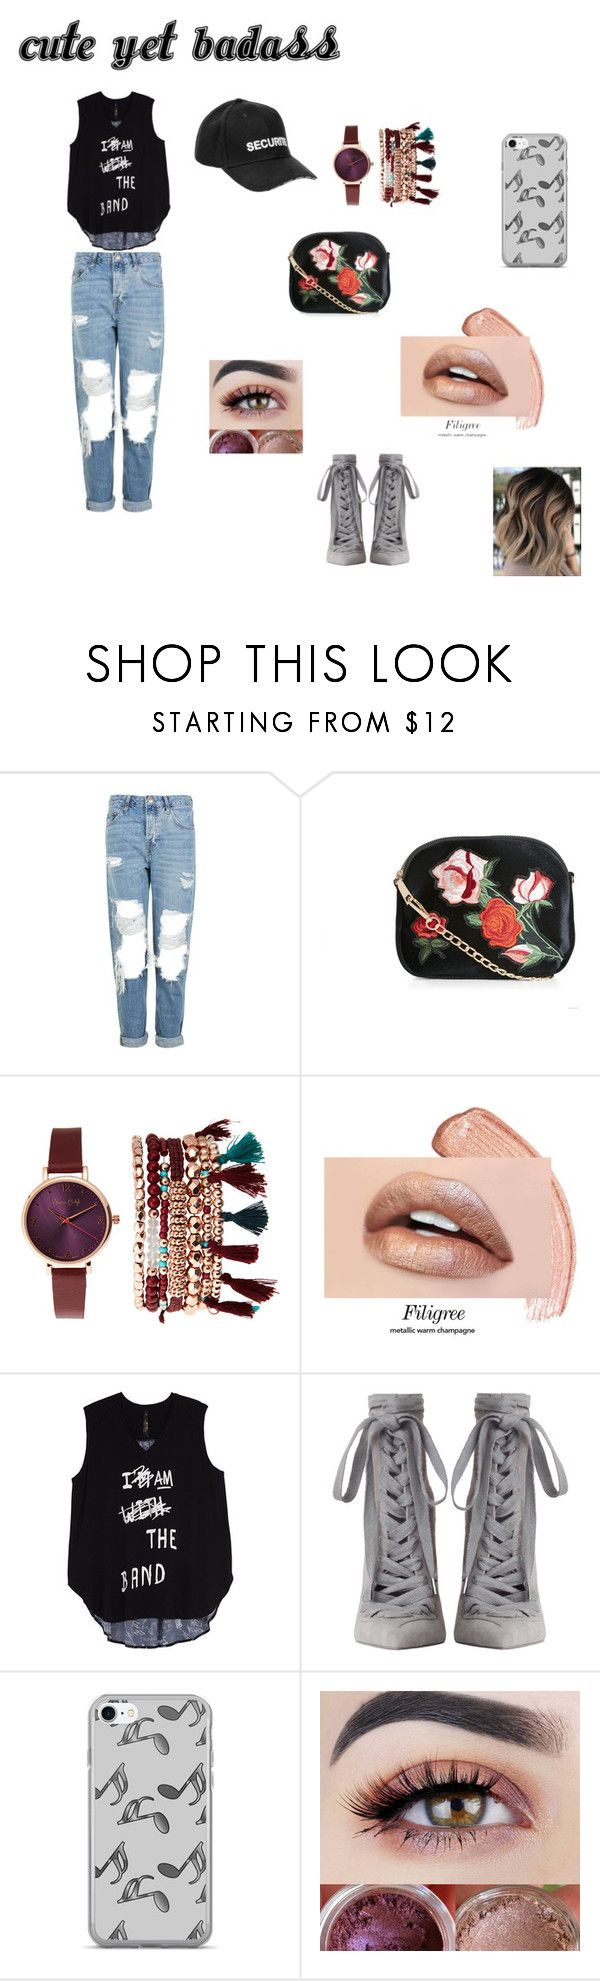 """""""Cute Yet Badass"""" by mikkiestyles ❤ liked on Polyvore featuring Topshop, New Look, Jessica Carlyle, Melissa McCarthy Seven7, Zimmermann, Music Notes, Vetements and plus size clothing"""